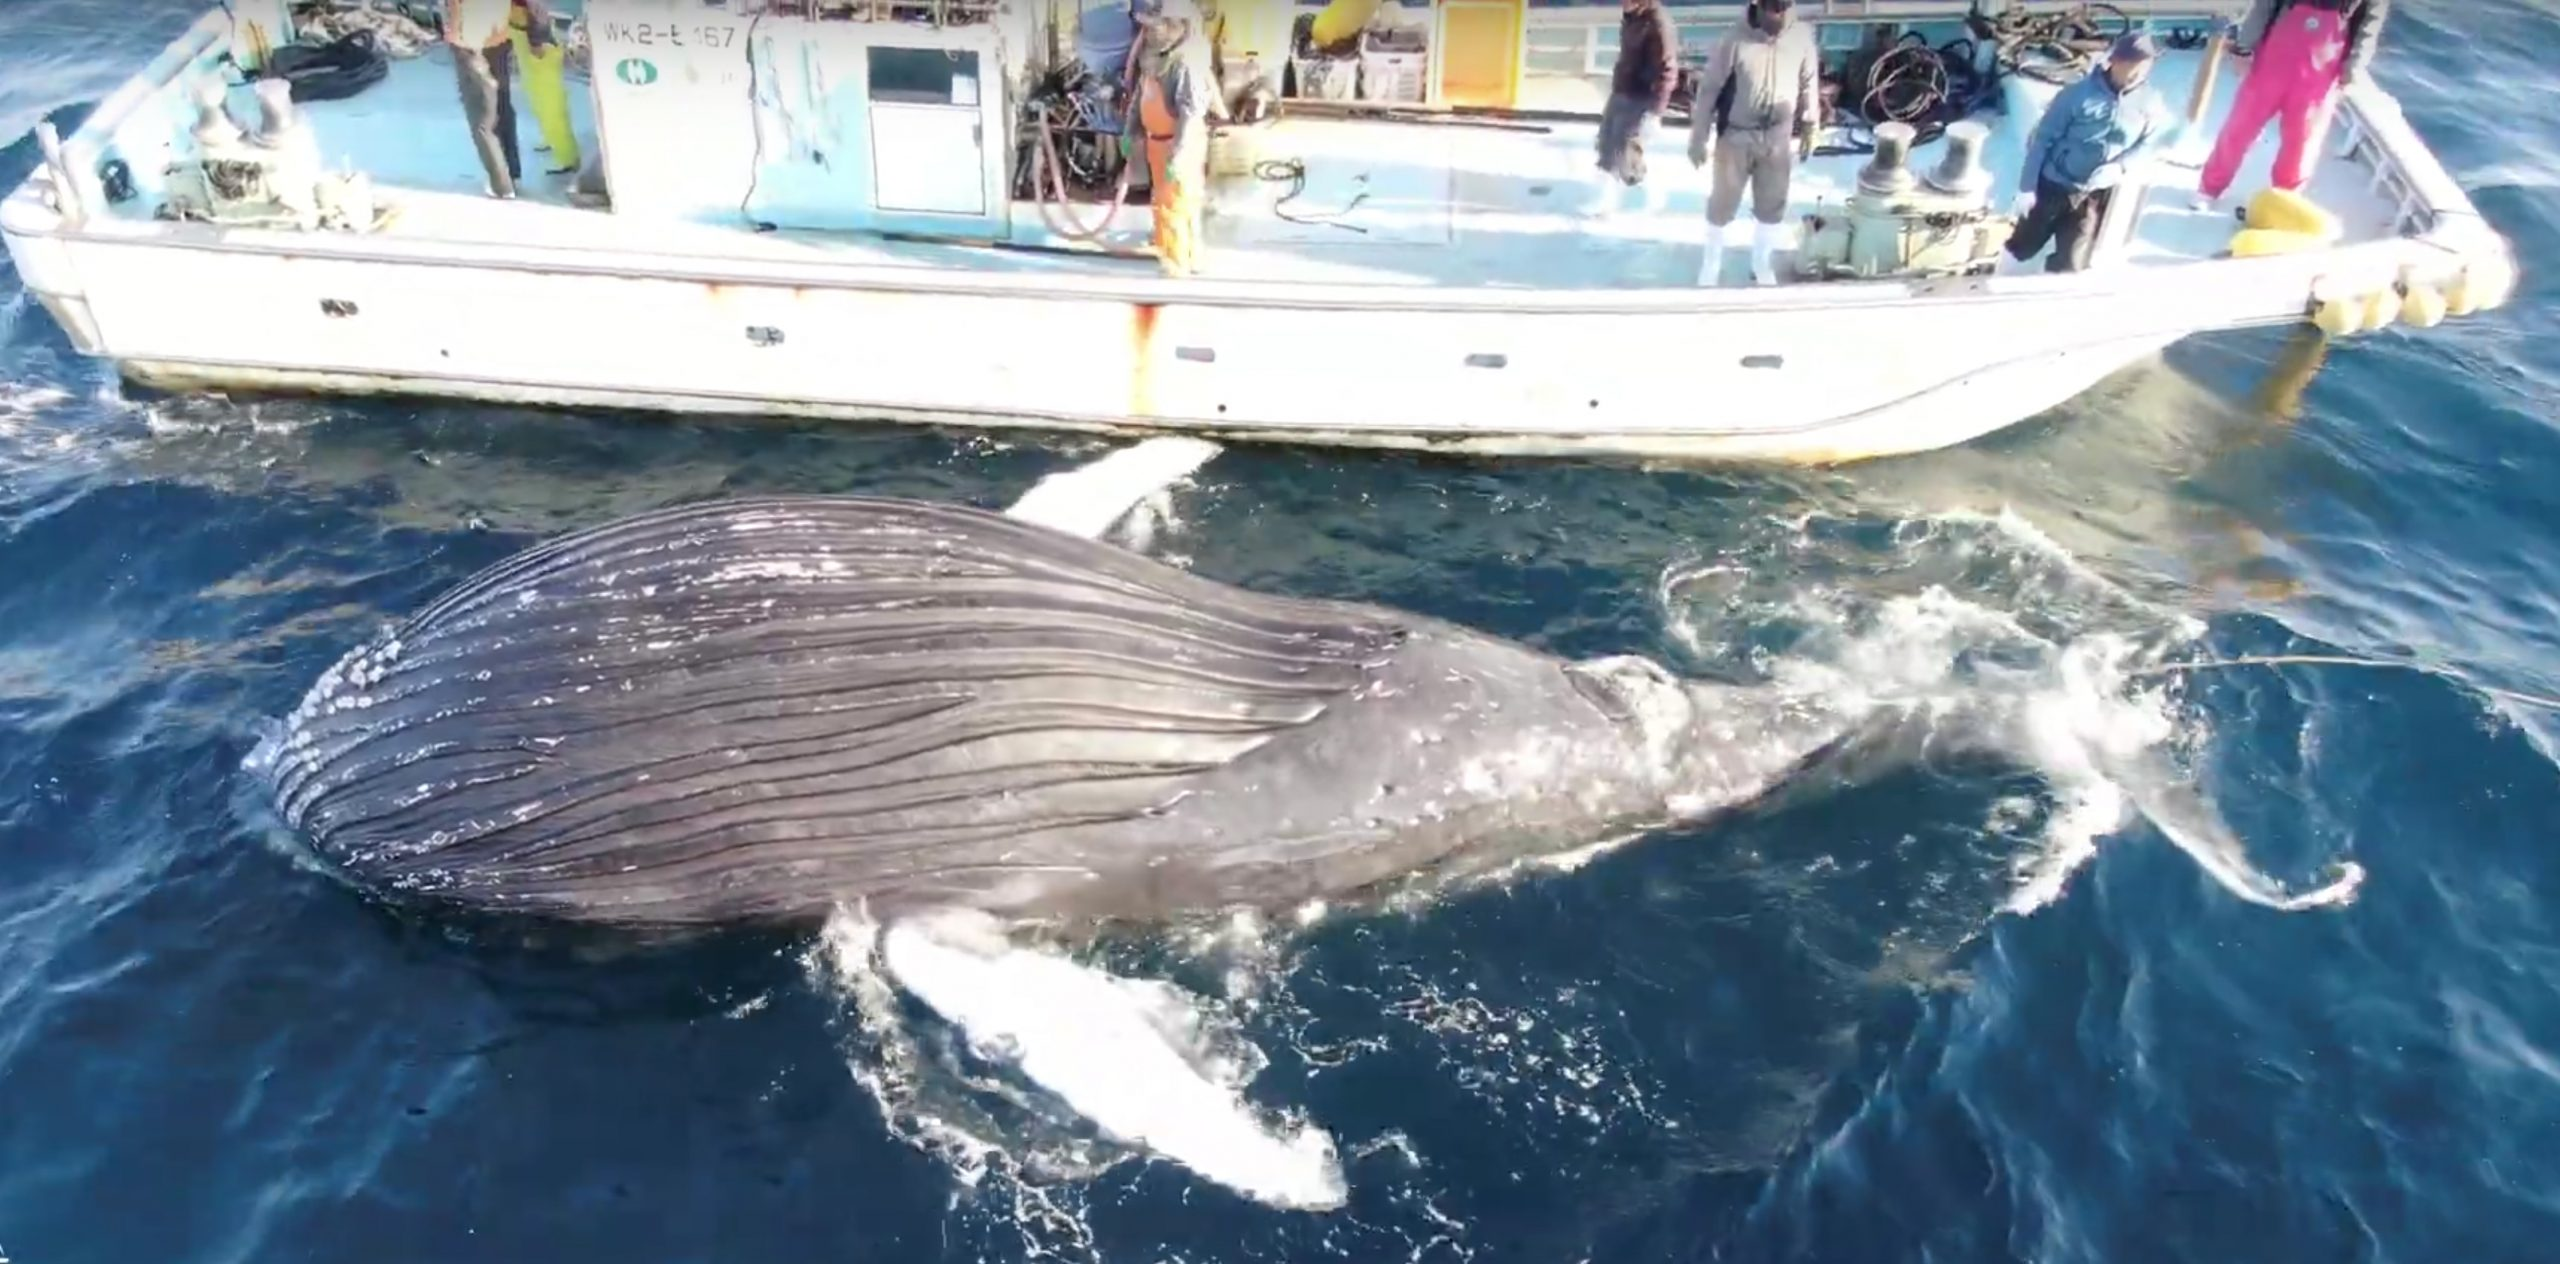 Humpback whale dragged back out to sea after dying in Taiji's fishing nets, Taiji, Japan